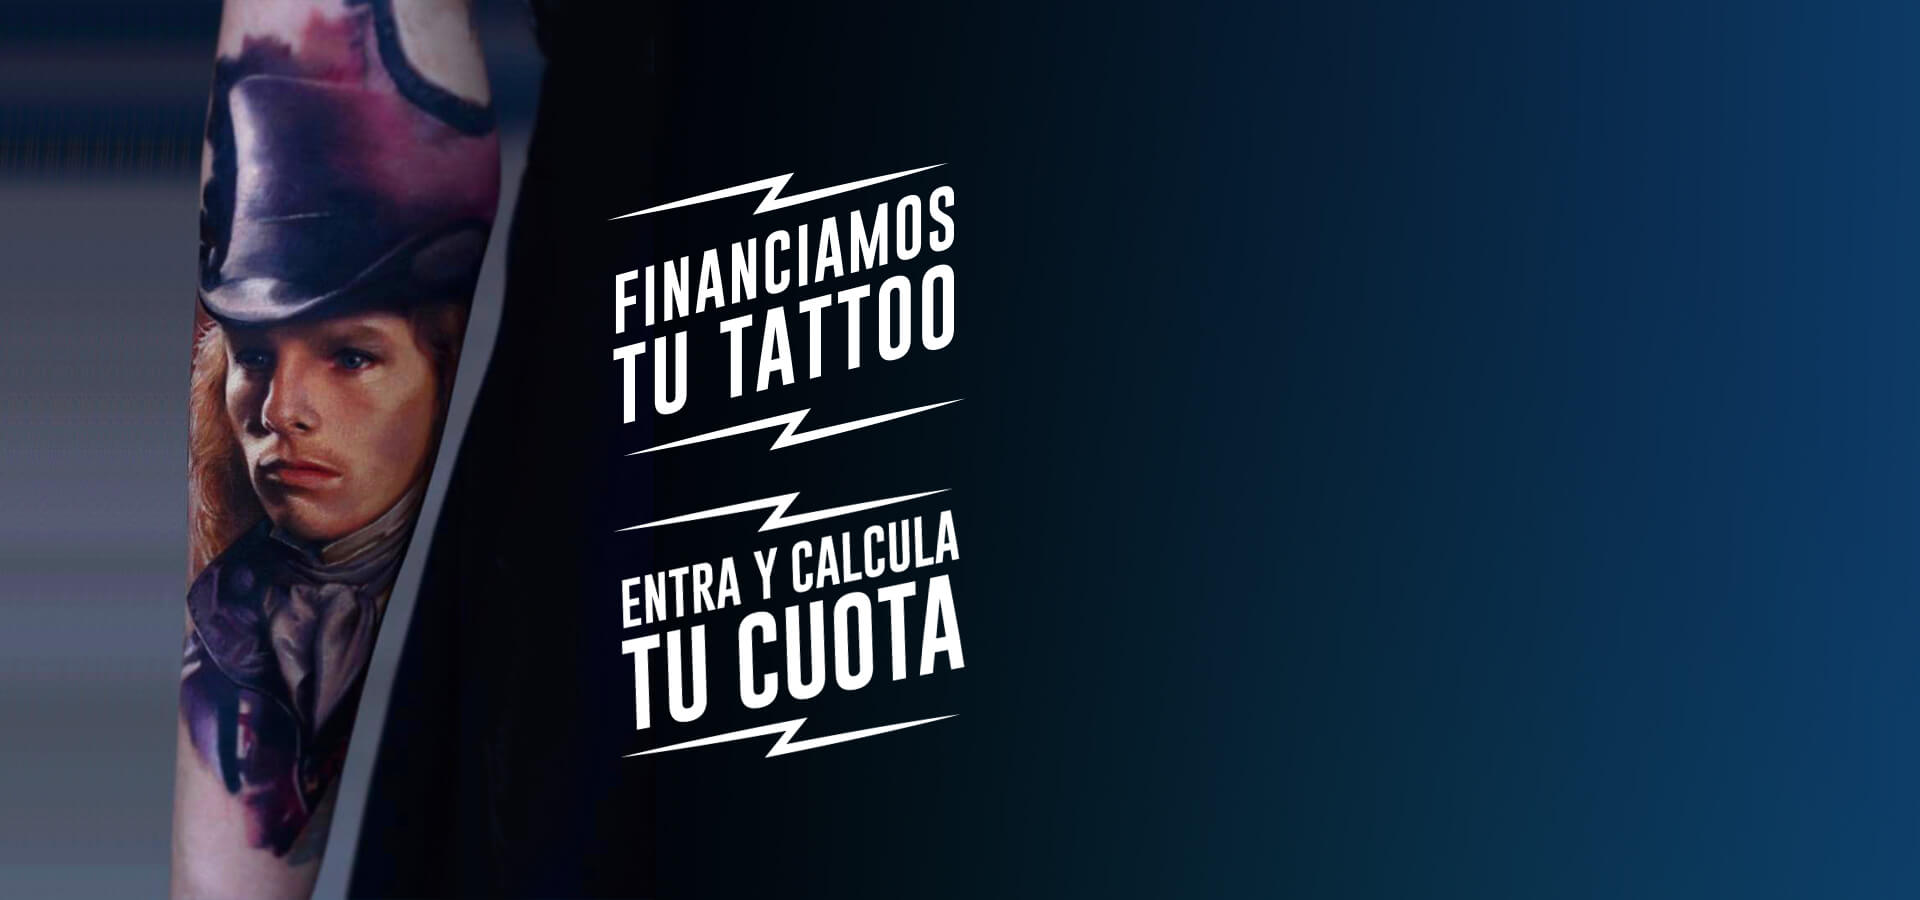 Financiacion tatuajes